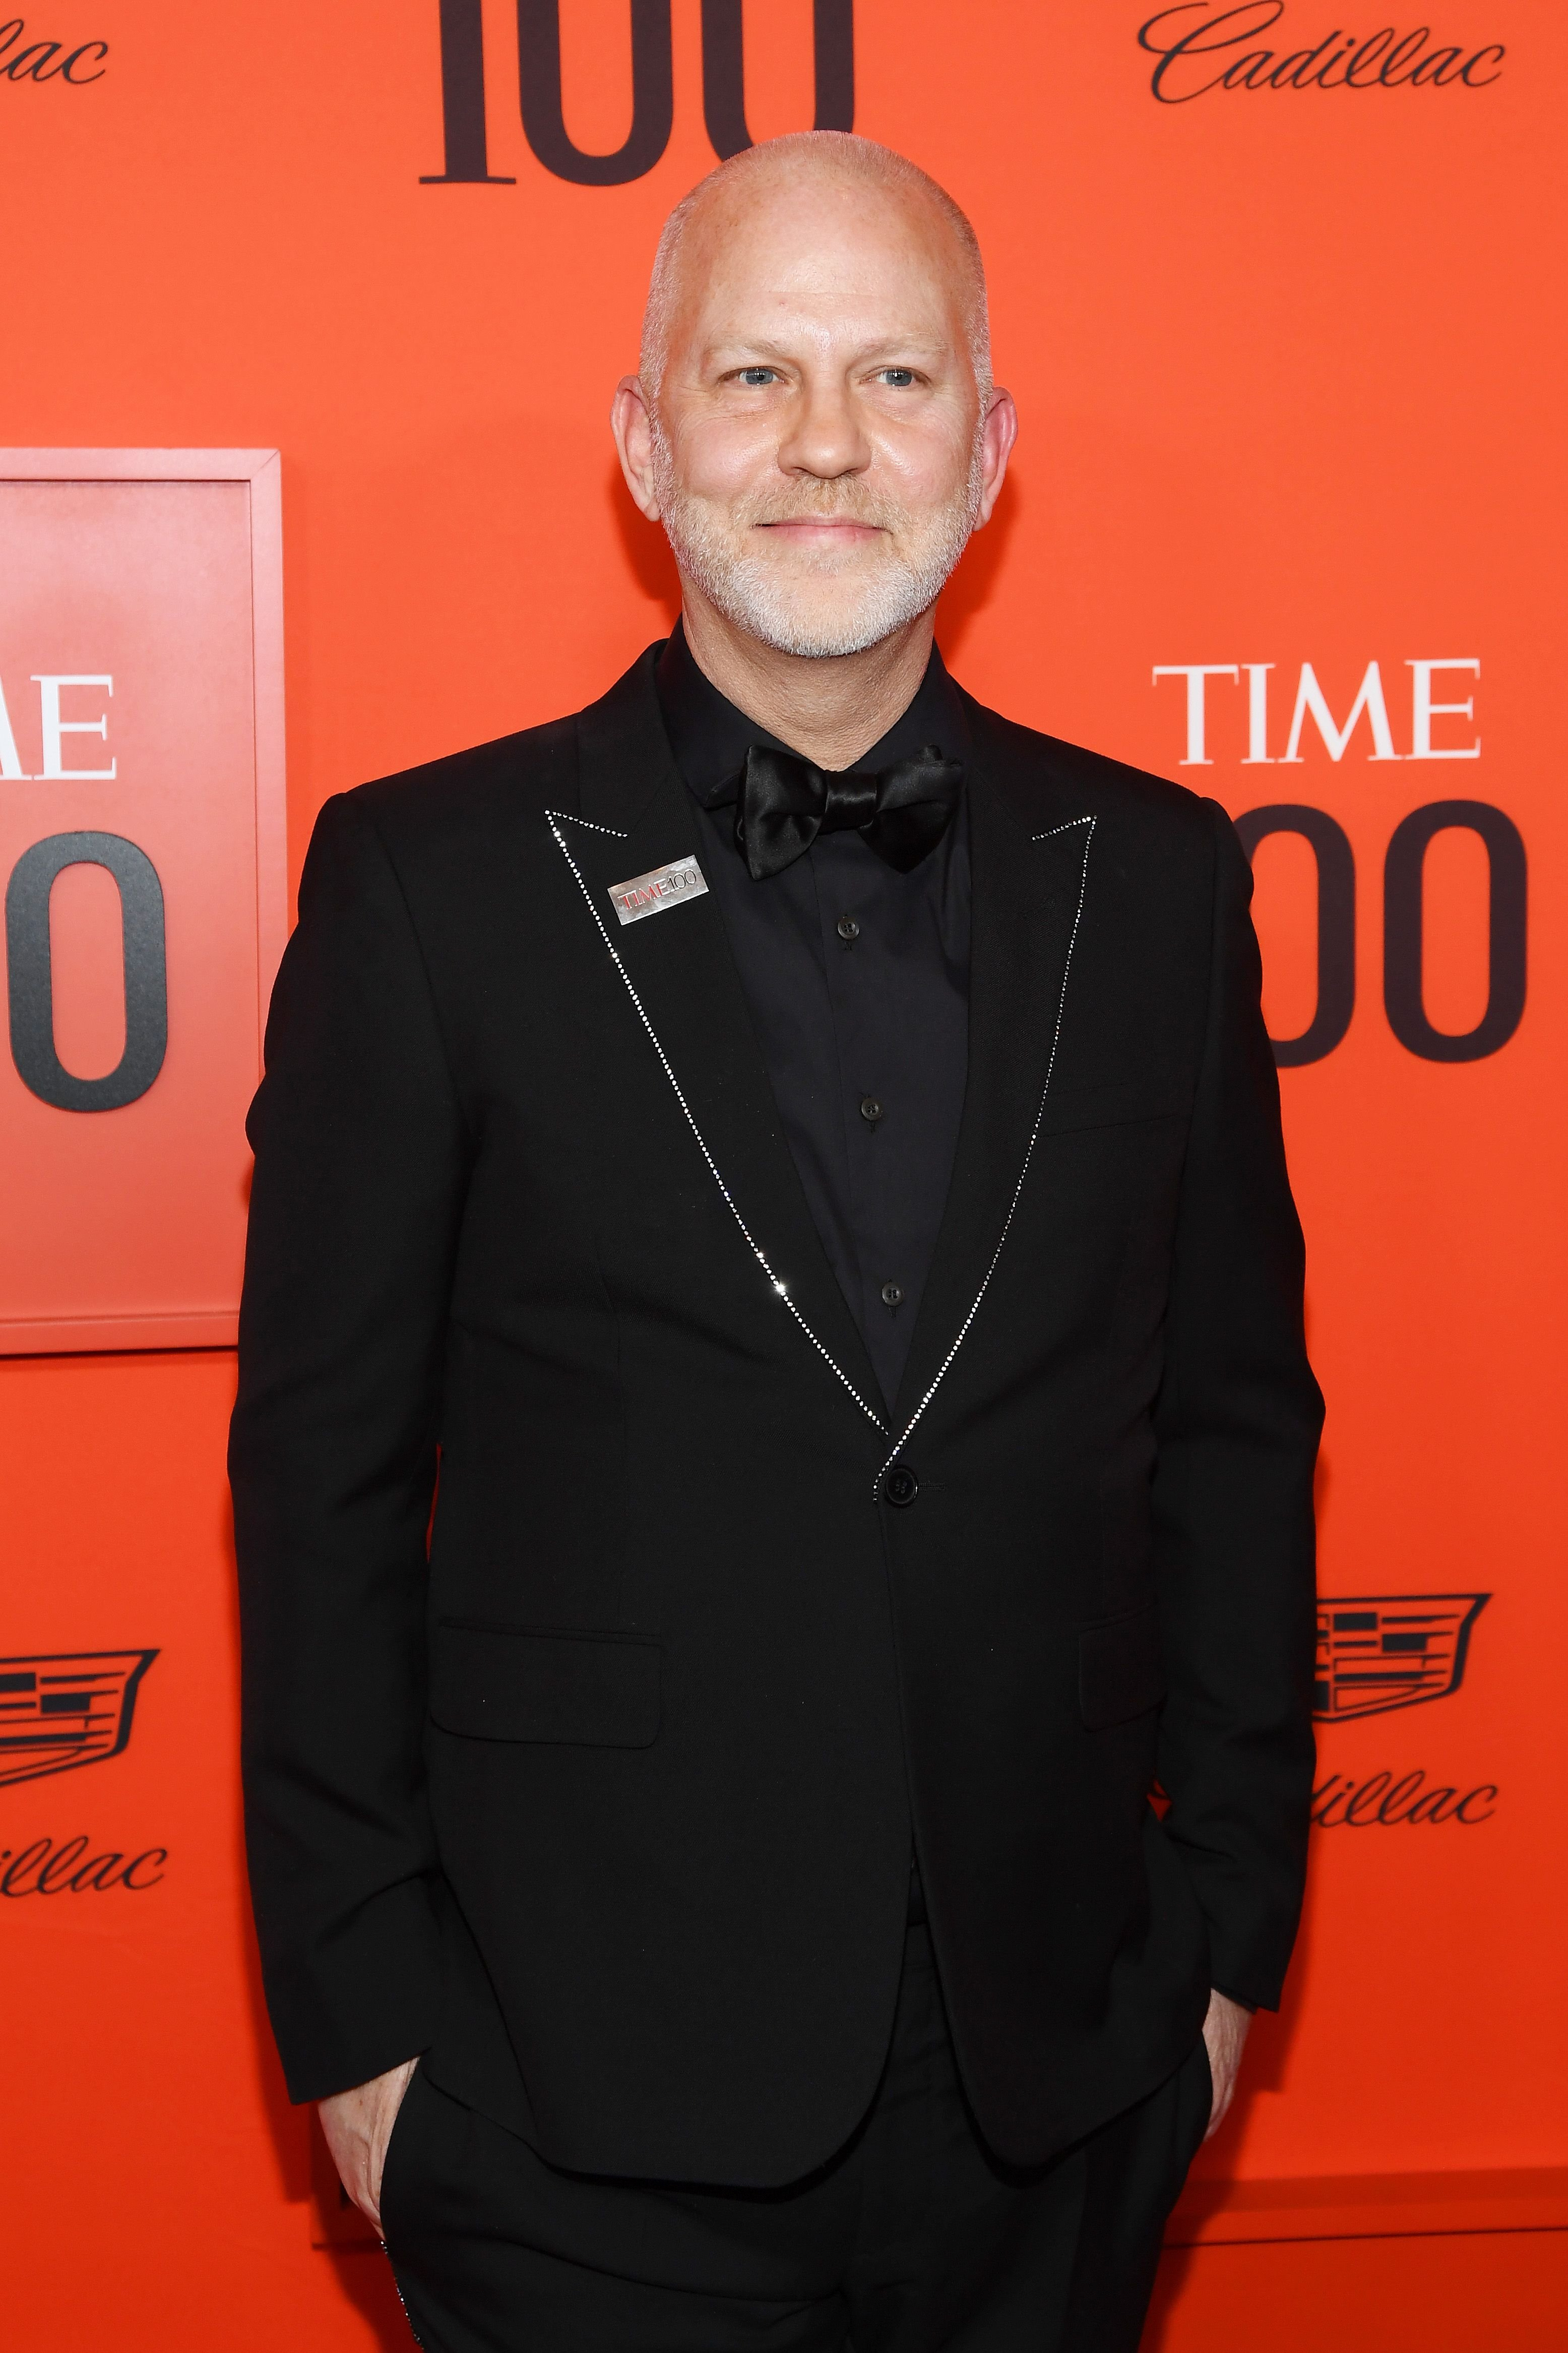 Ryan Murphy at the TIME 100 Gala Red Carpet at Jazz at Lincoln Center on April 23, 2019 | Photo: Getty Images